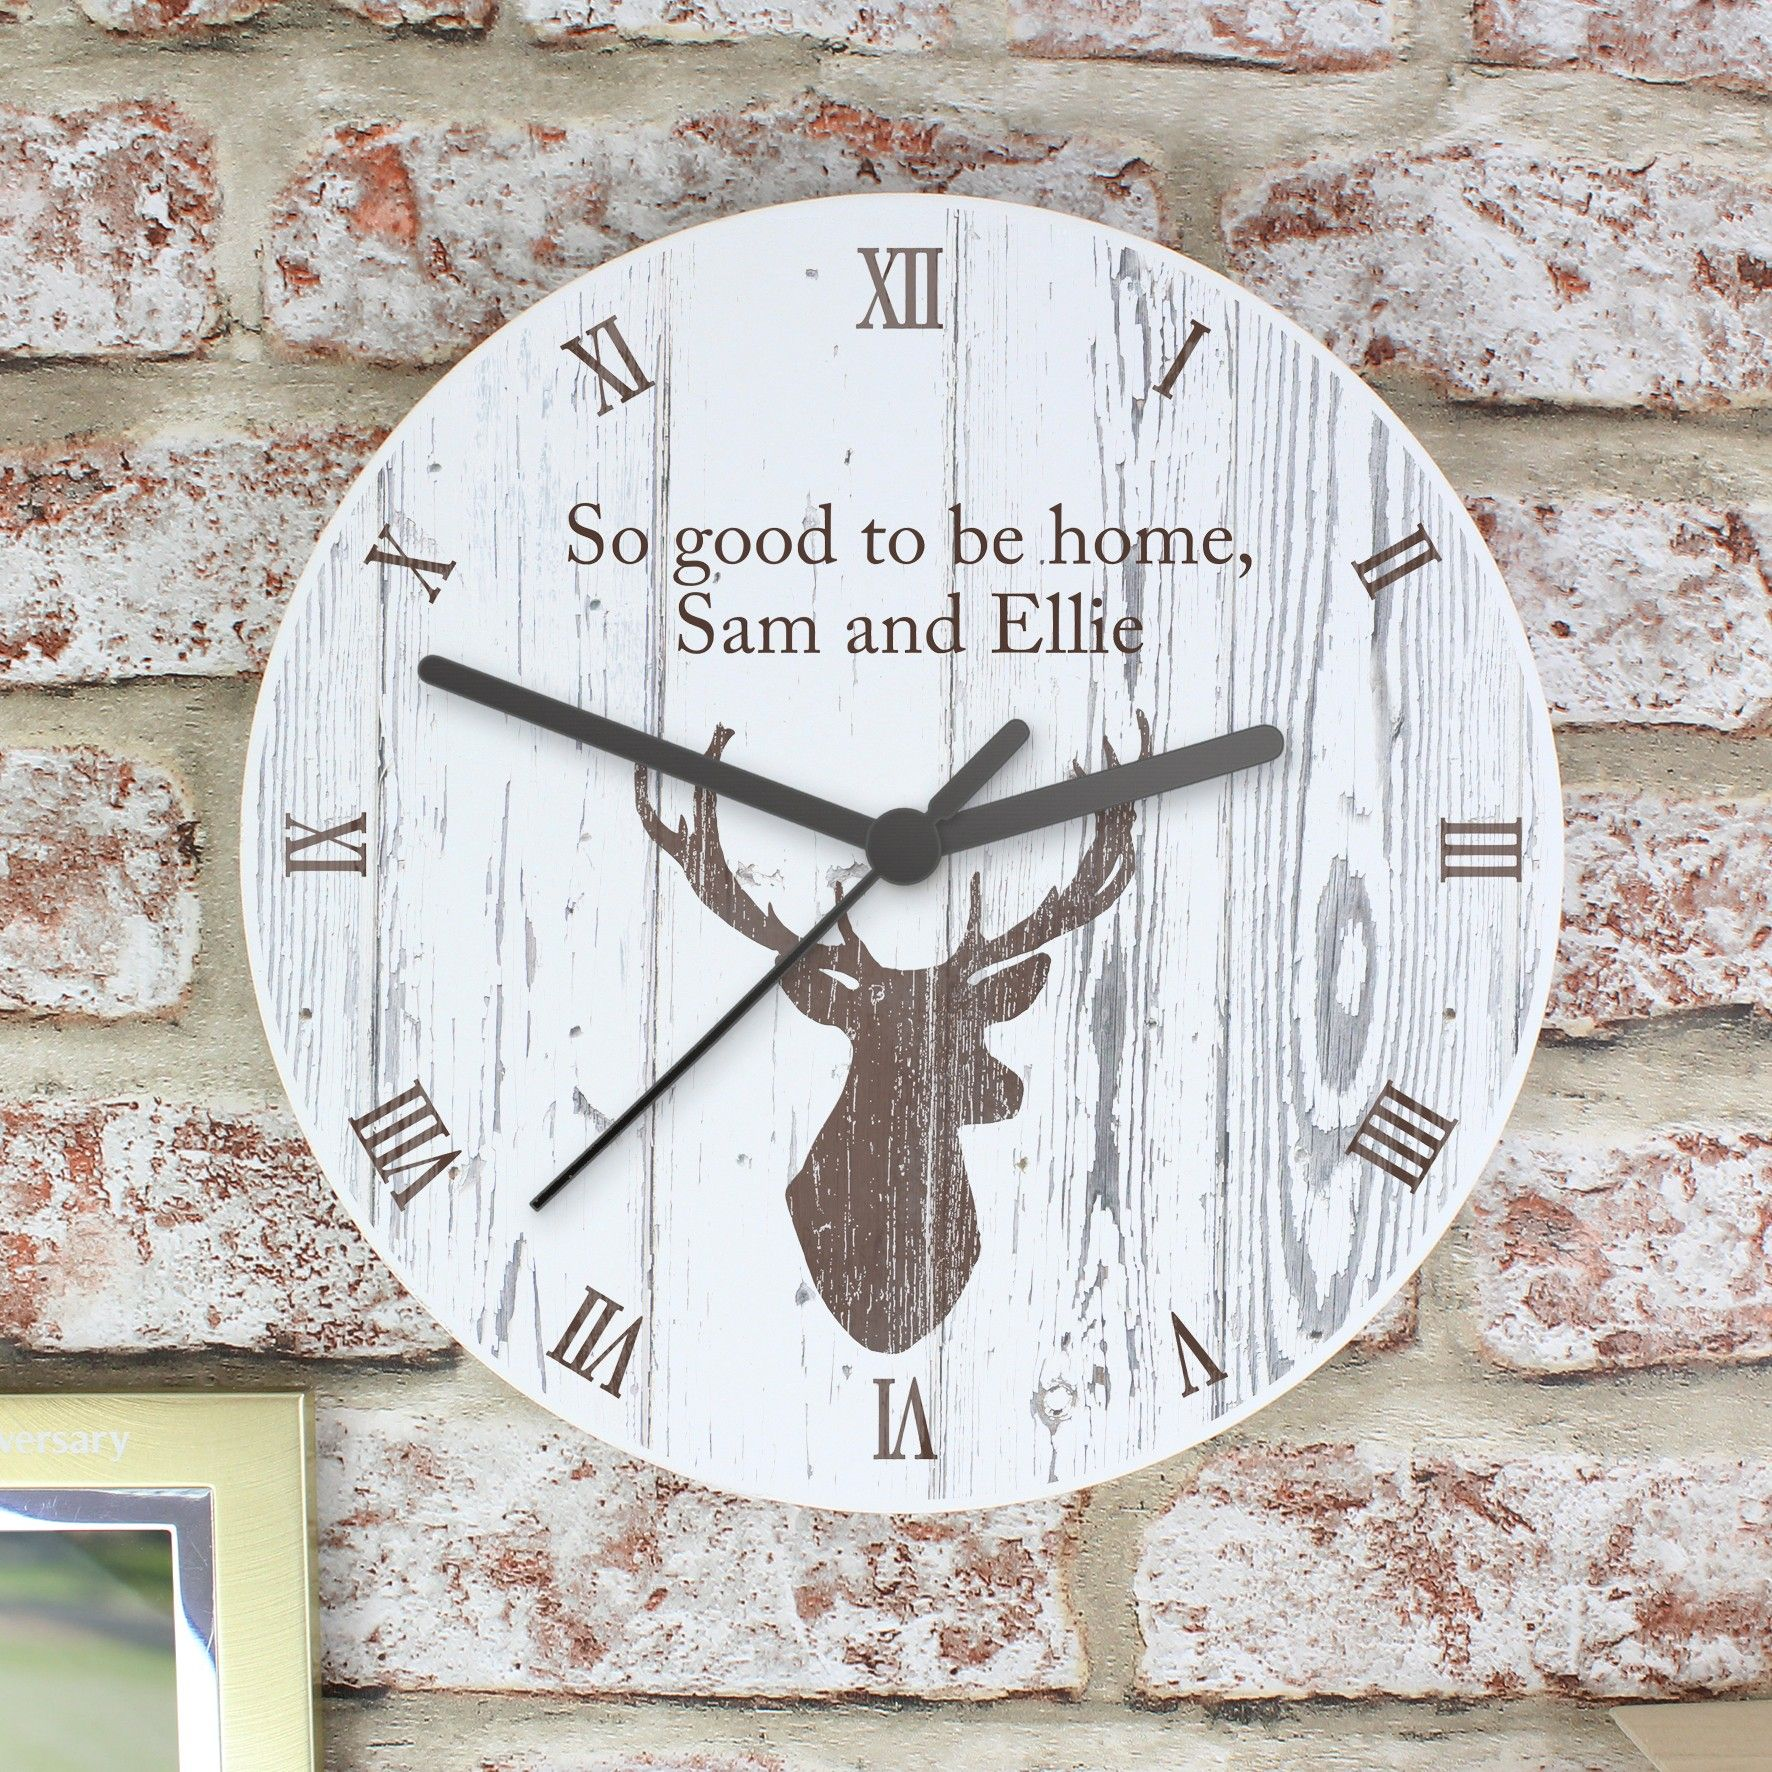 Personalised highland stag wooden clock p1011c25 this highland personalised highland stag wooden clock p1011c25 this highland stag wooden clock is a chic and stylish amipublicfo Image collections